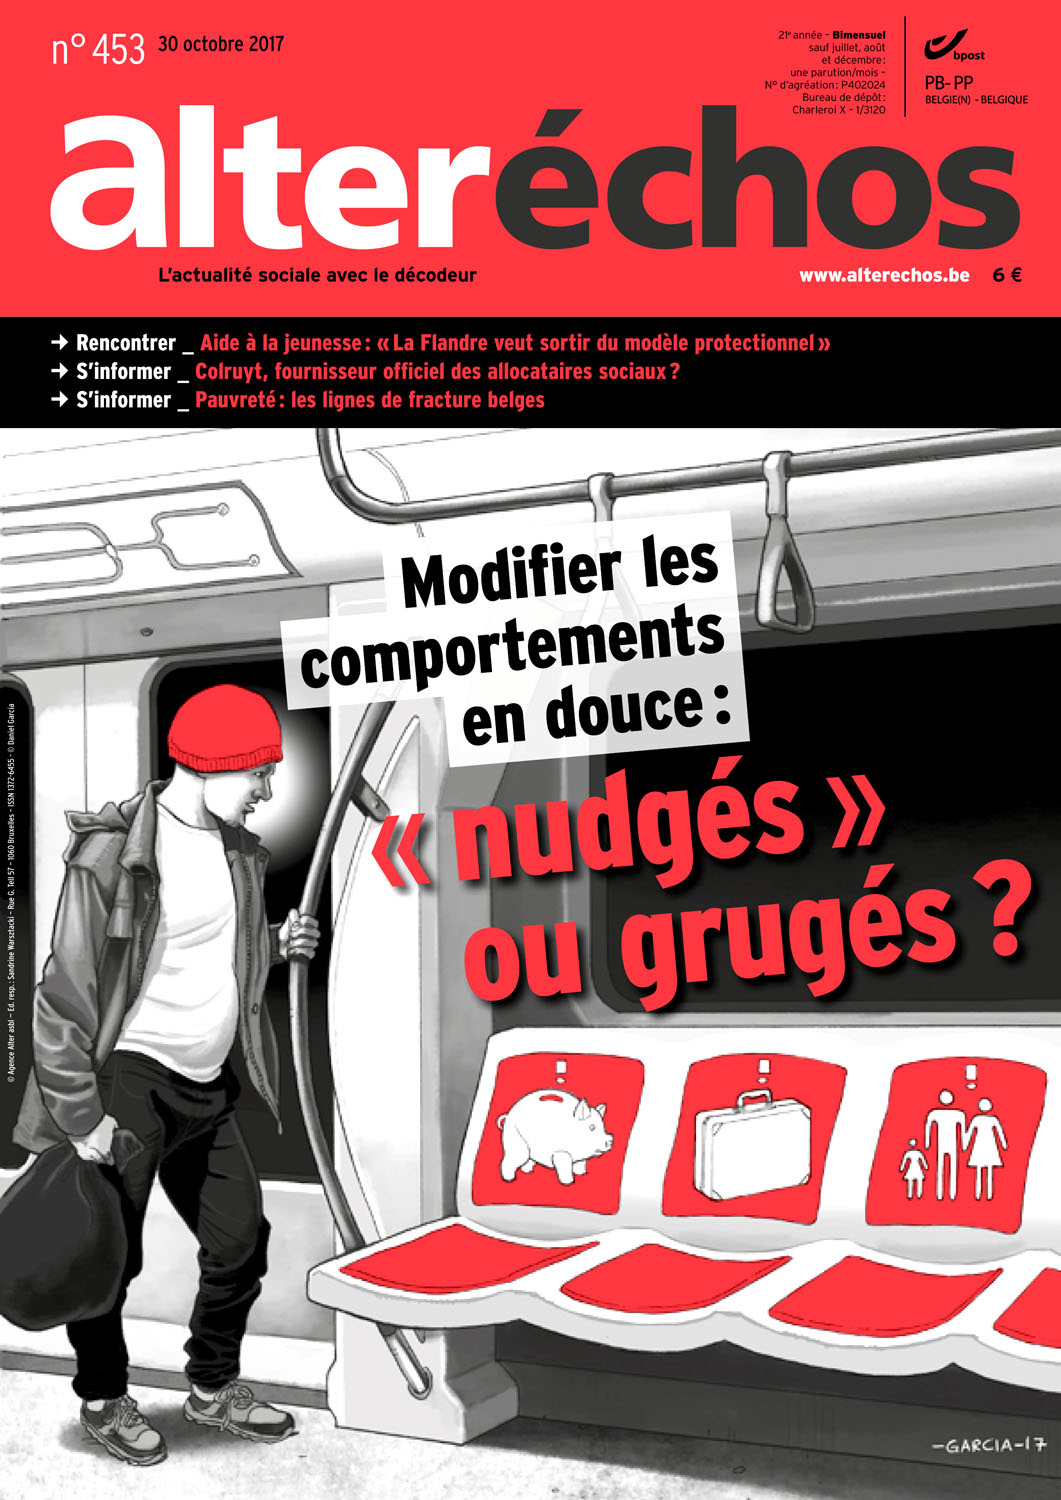 Daniel Garcia Art Illustration Editorial Belgium Belgique Alter Echos Pauverty Pauverte Nudging 02